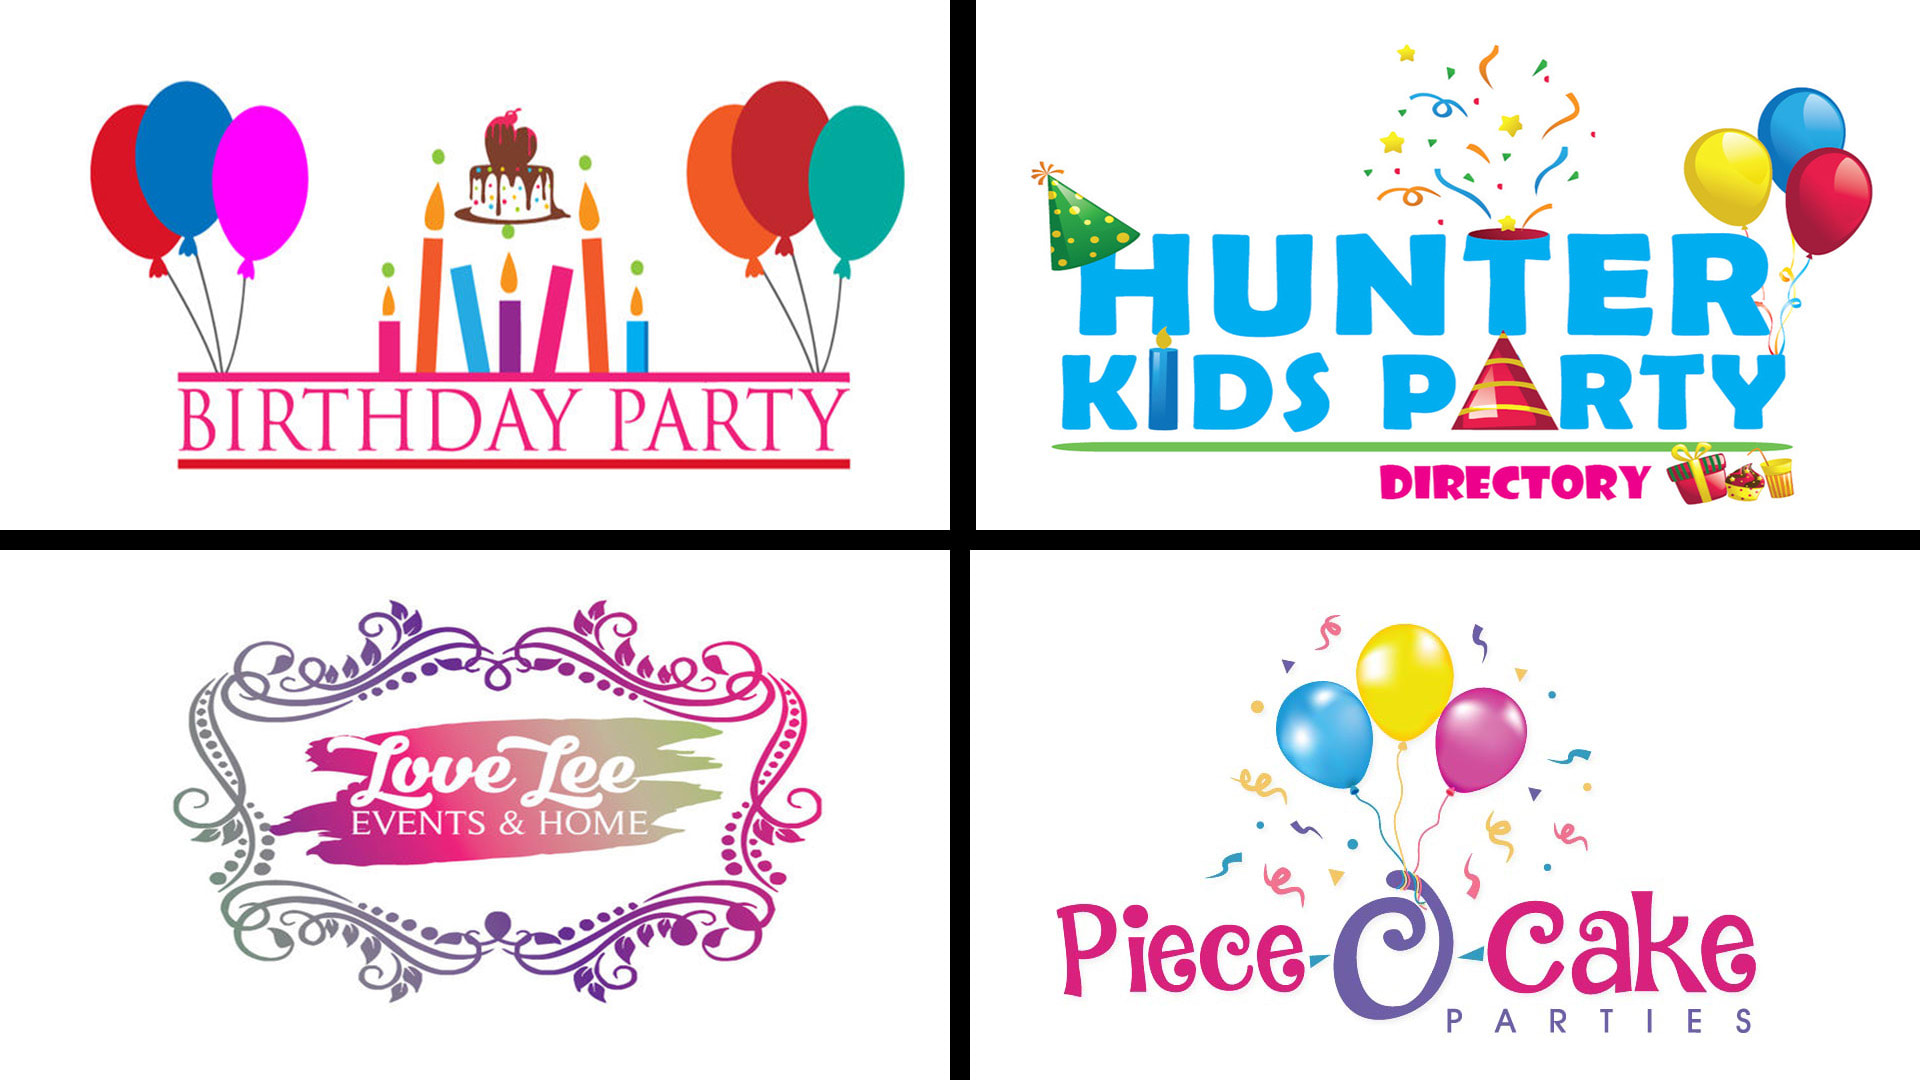 Make fine event birthday party logo design by Abubakardesigns